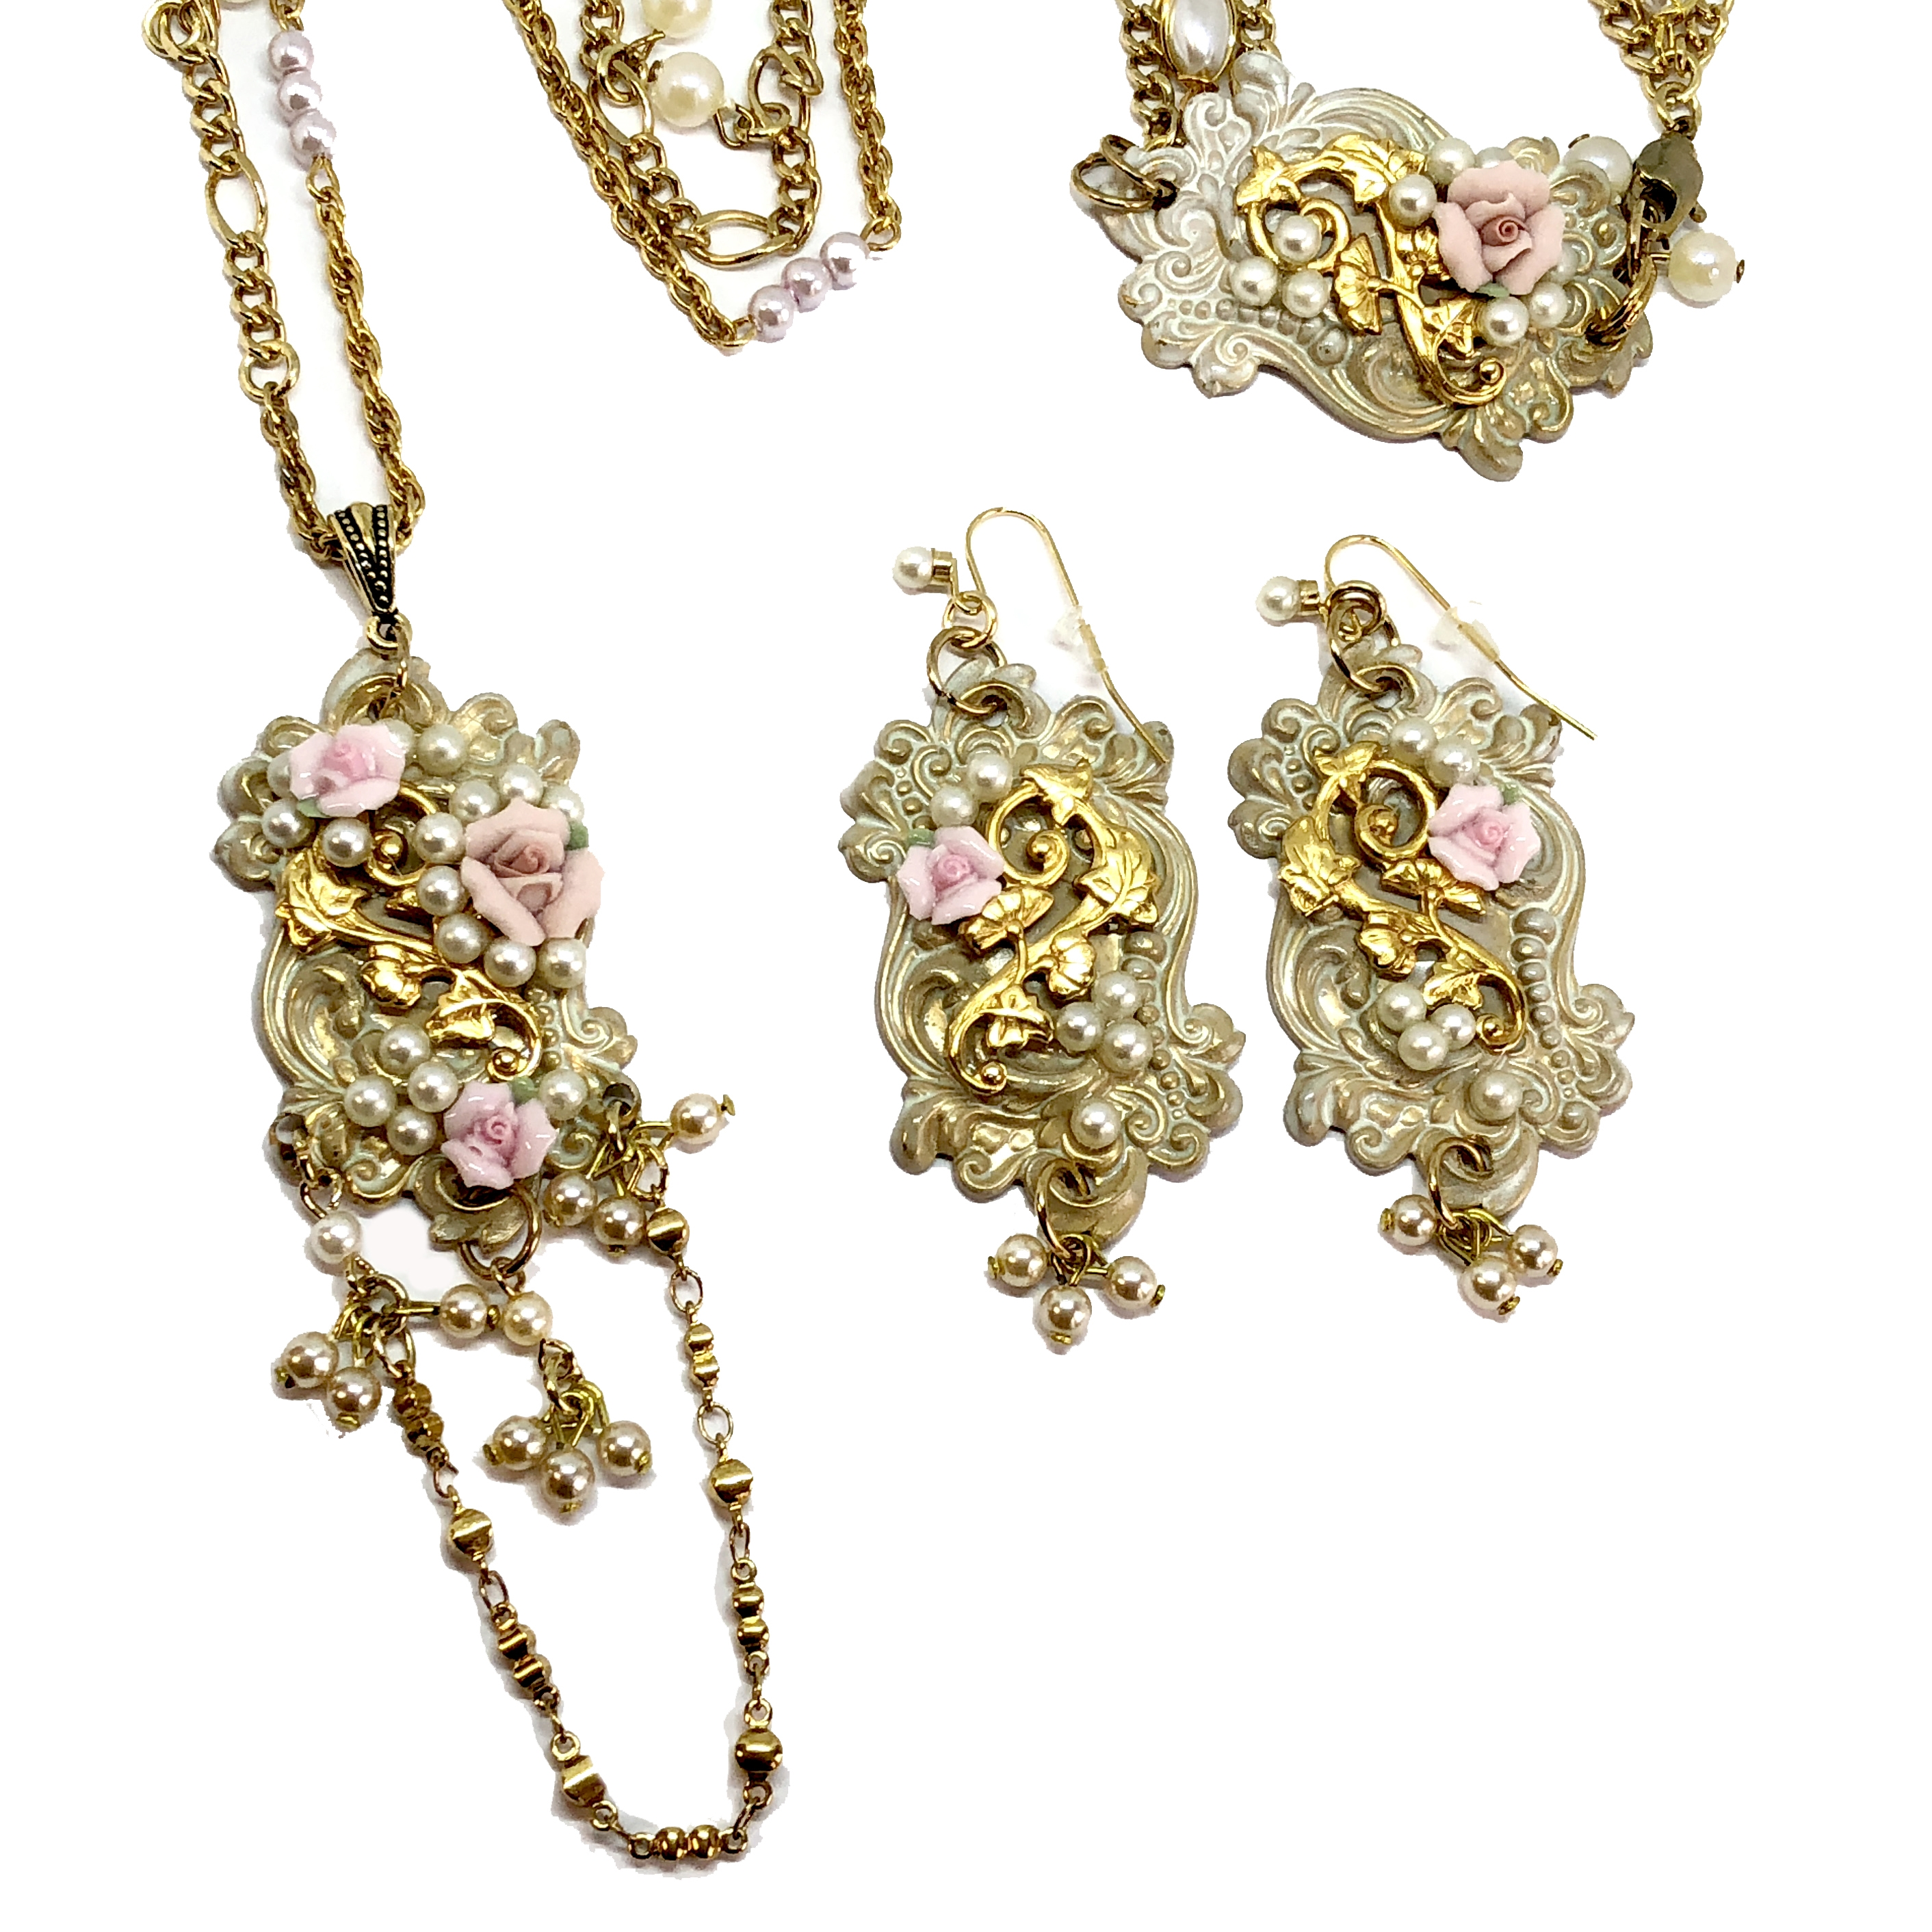 Parure Set, Necklace, Bracelet, Earrings, 05358, pearl chain, bisque rose necklace, bsue boutiques, college necklace, necklace making, jewelry making, jewelry set, bsue boutiques, 3 piece jewelry set, classic gold jewelry, bisque rose jewelry set